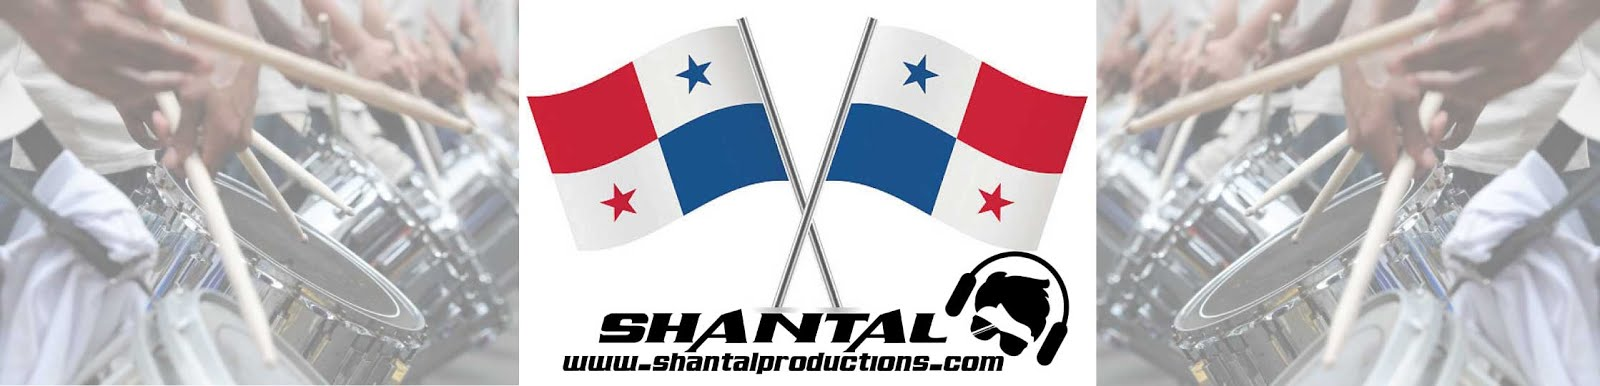 Shantal ProductionS